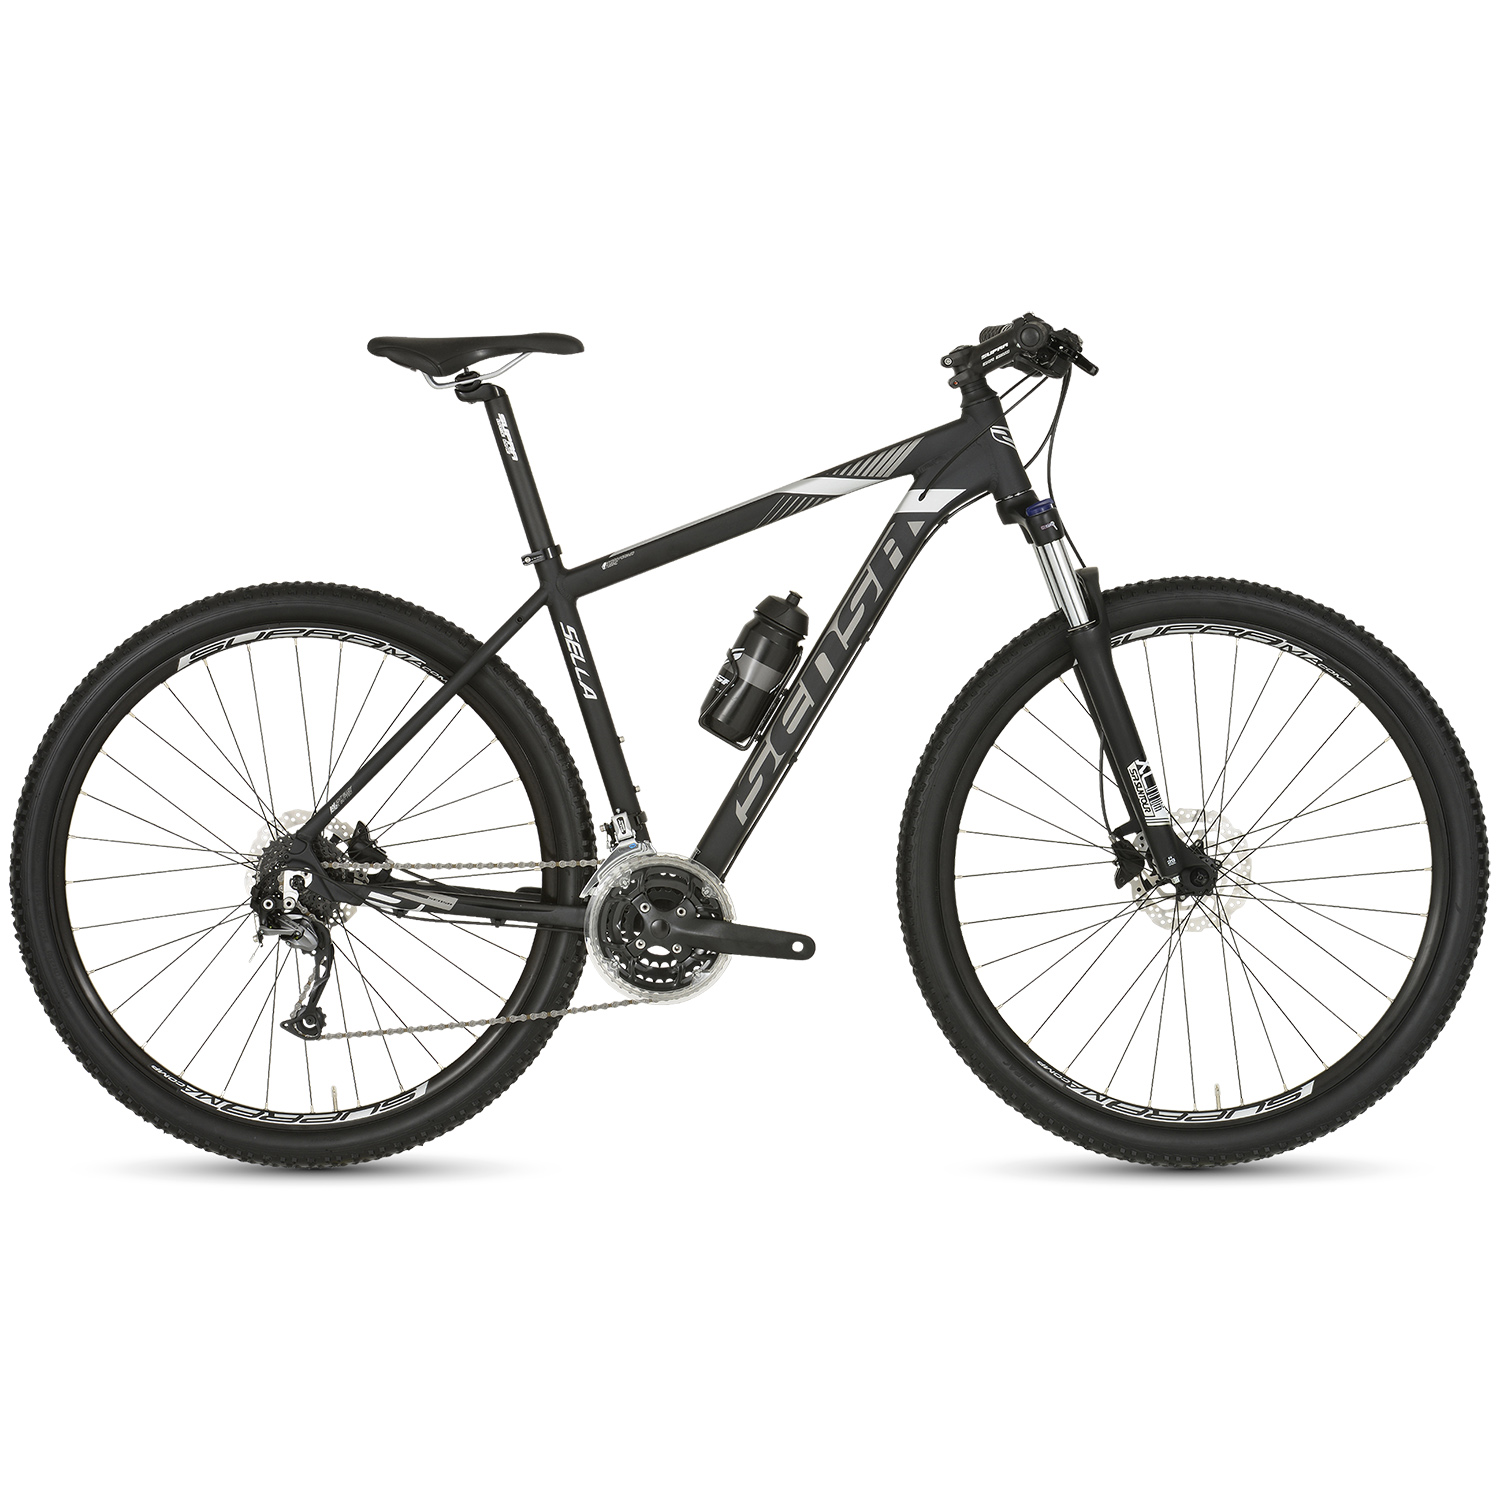 "Sensa Sella 24 29"" Mountain Bike - 2019"